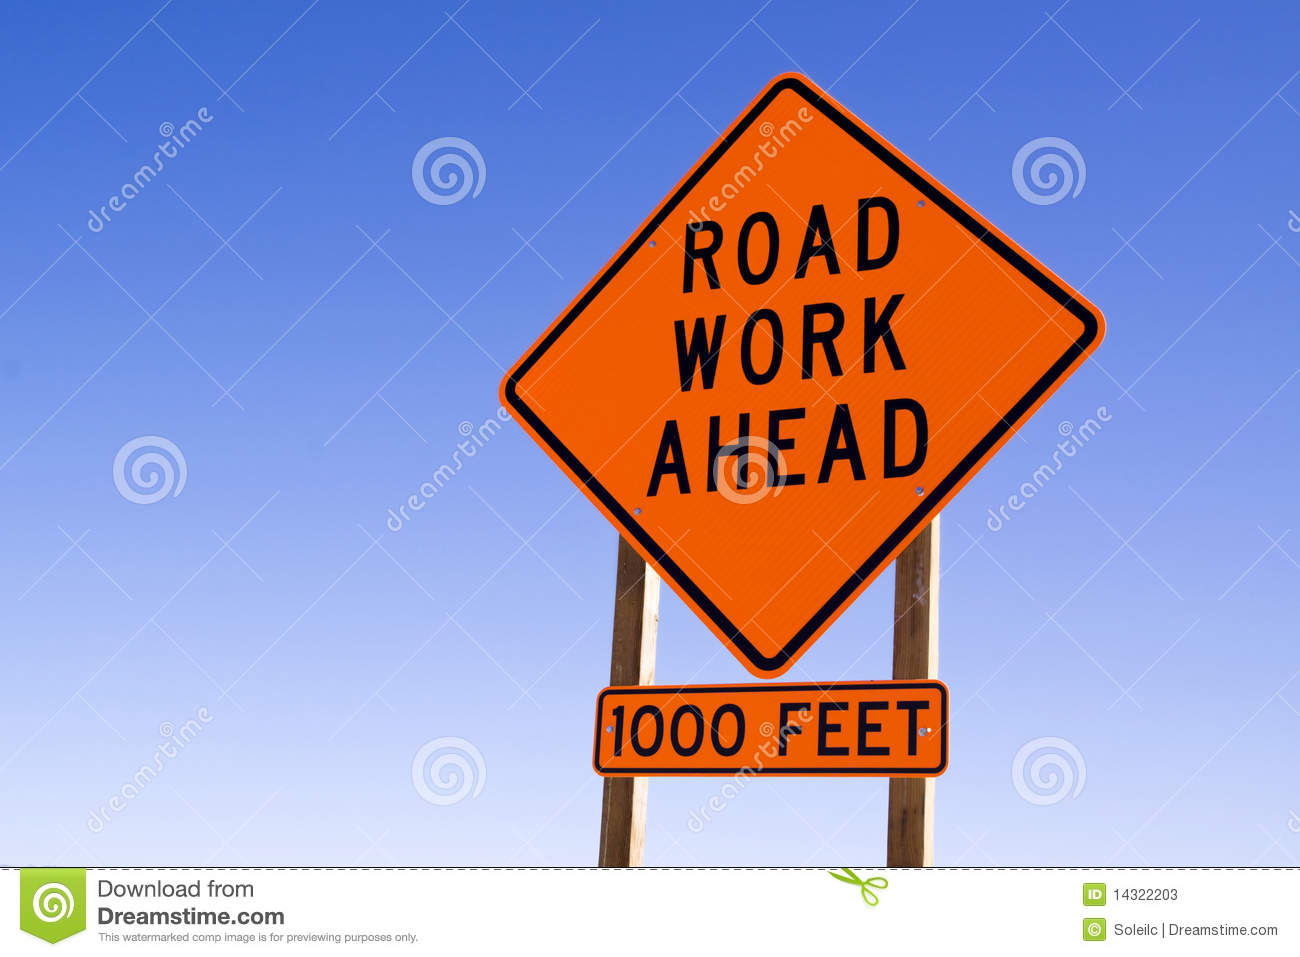 Road work sign stock image  Image of road, caution, drive